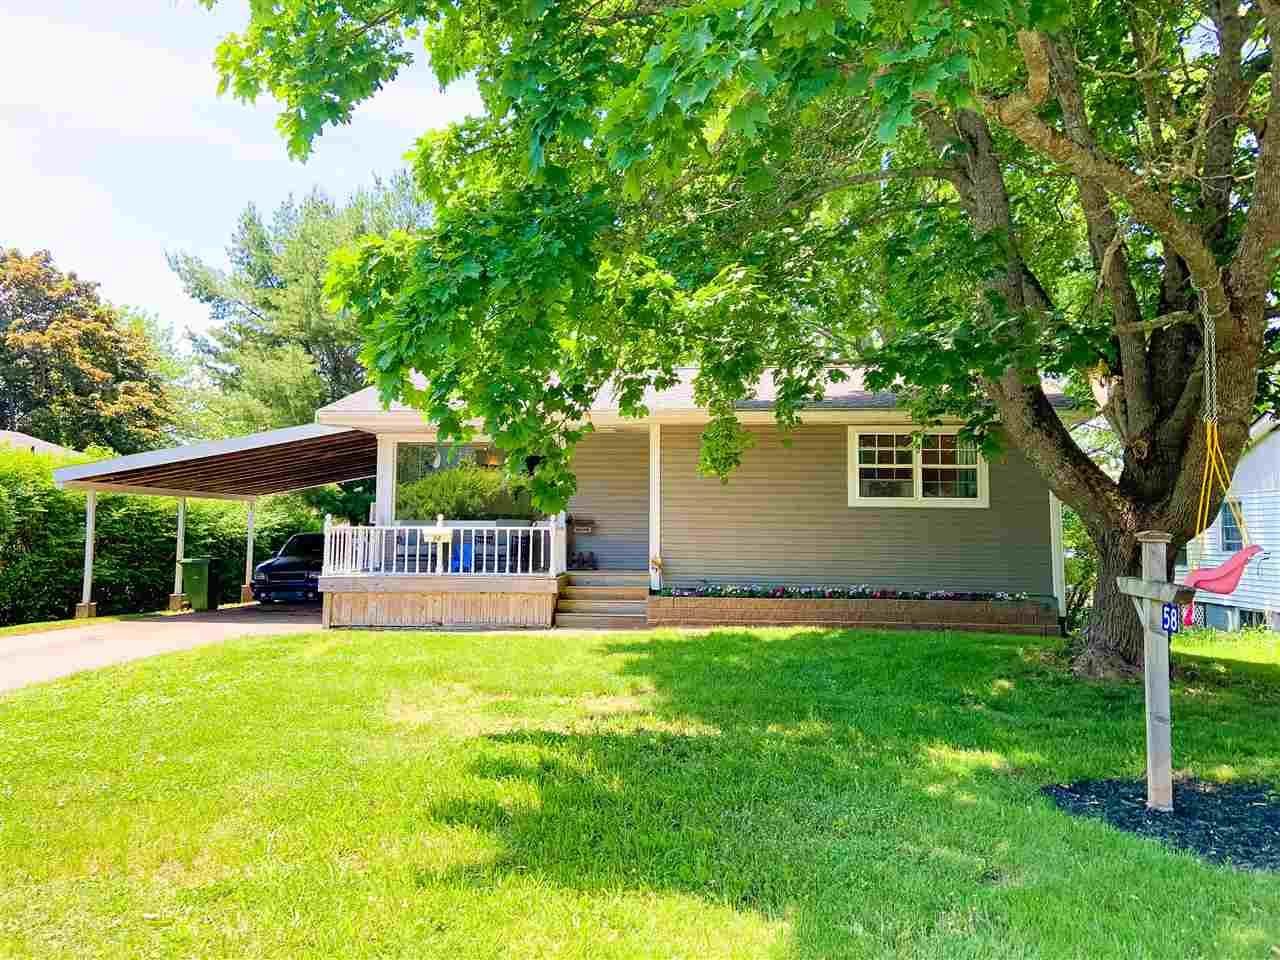 Main Photo: 58 Campbell Road in Kentville: 404-Kings County Residential for sale (Annapolis Valley)  : MLS®# 202010476